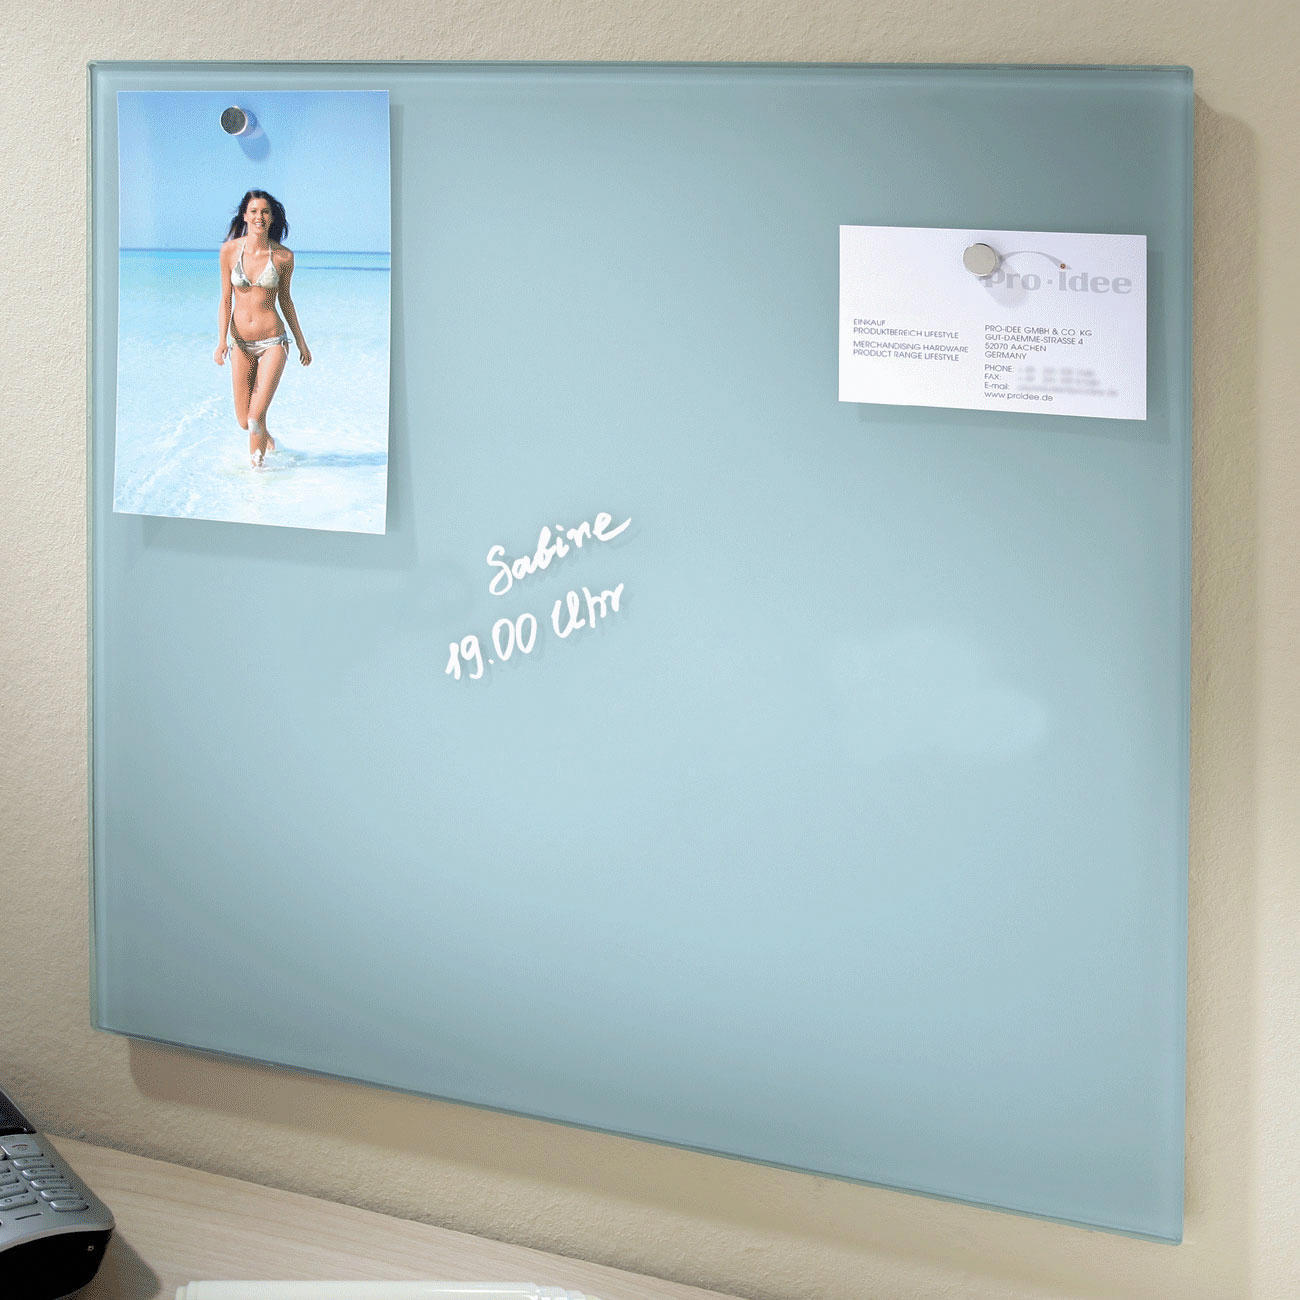 Buy magnetic glass board 3 year product guarantee for Tableau magnetique blanc ikea